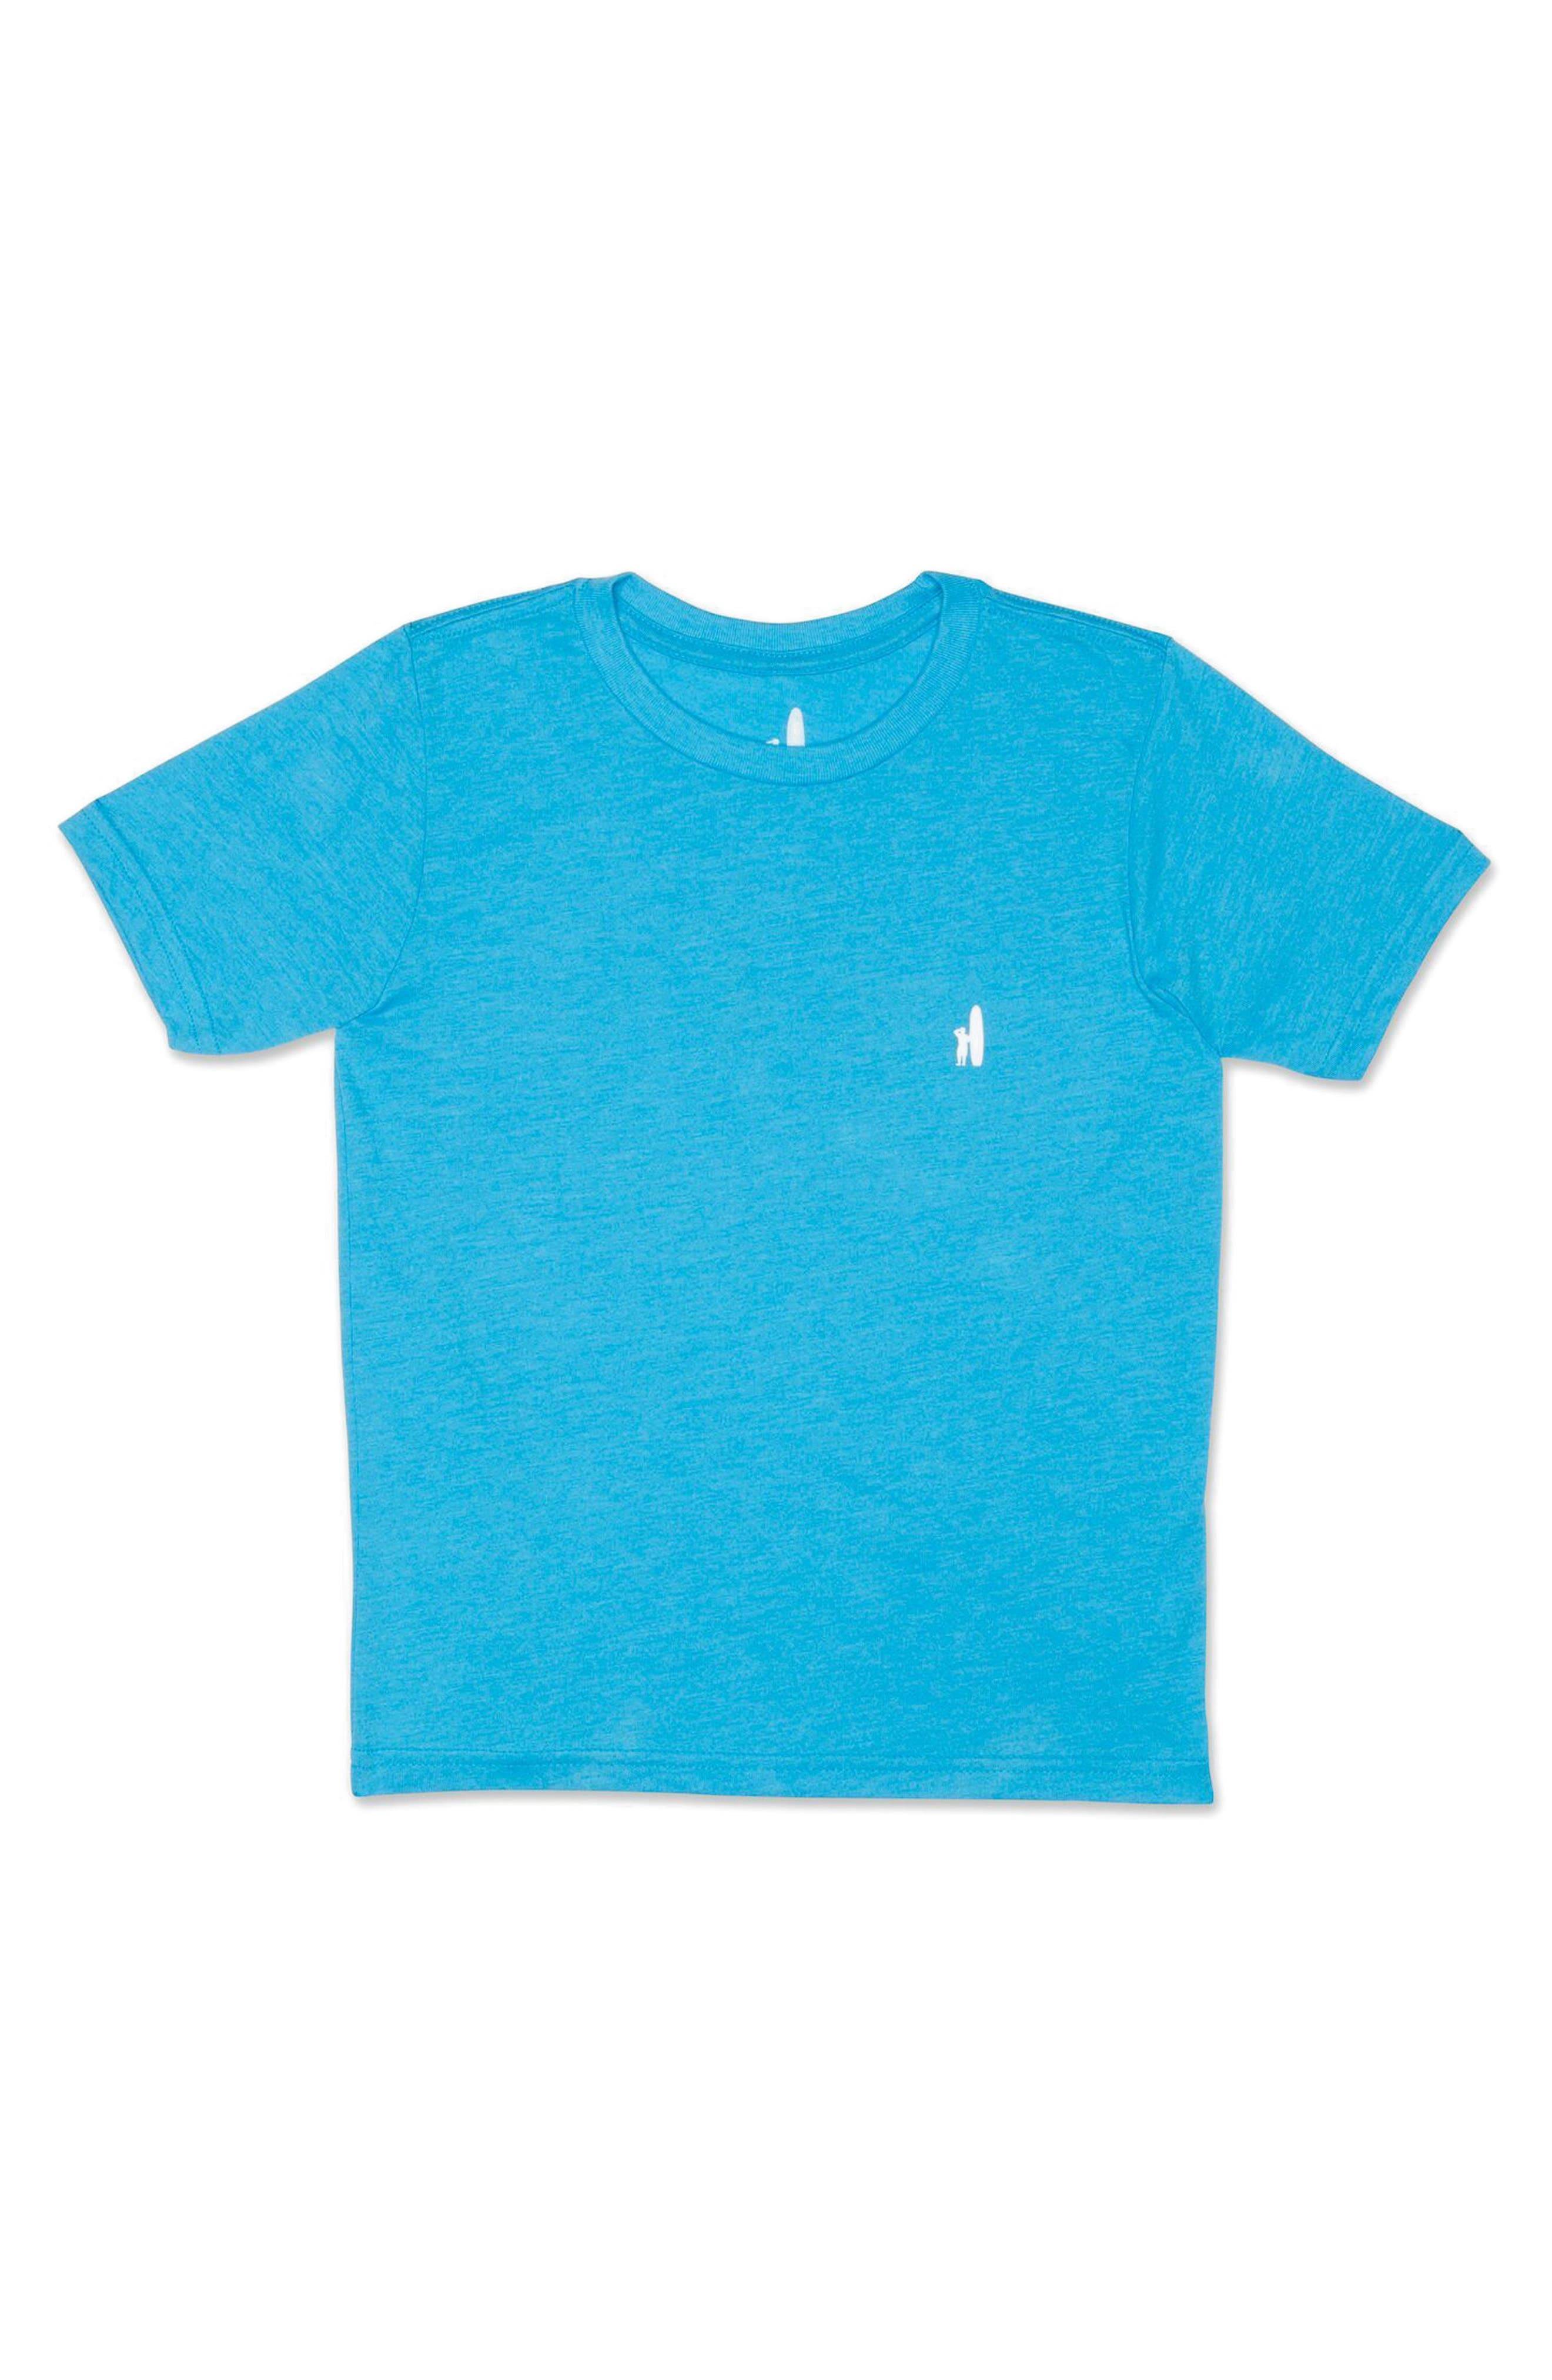 Vance Graphic T-Shirt,                         Main,                         color, Cayman